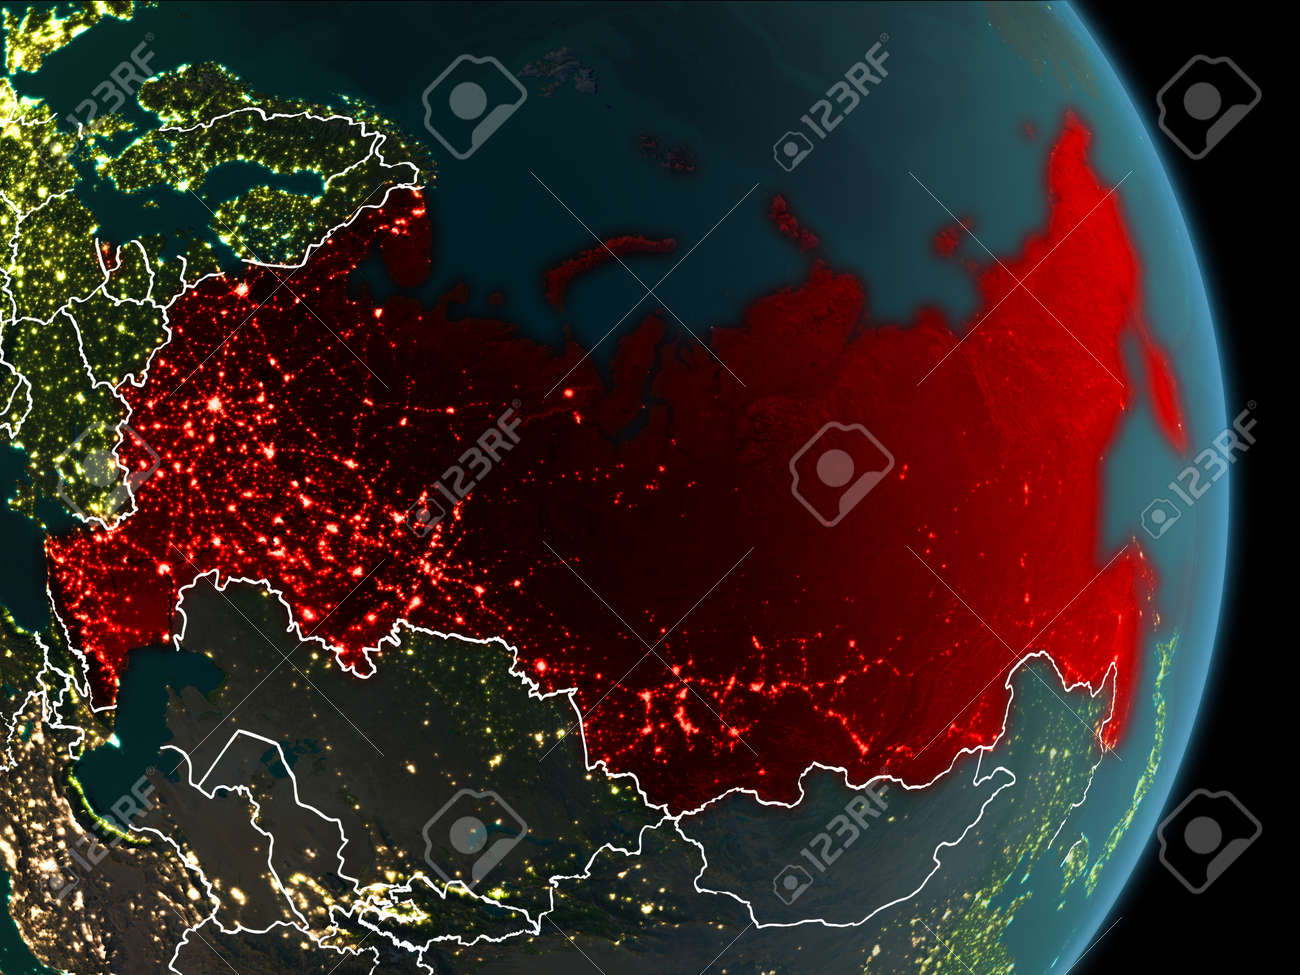 Map of russia in red as seen from space on planet earth at night illustration map of russia in red as seen from space on planet earth at night with white borderlines and city lights 3d illustration gumiabroncs Images